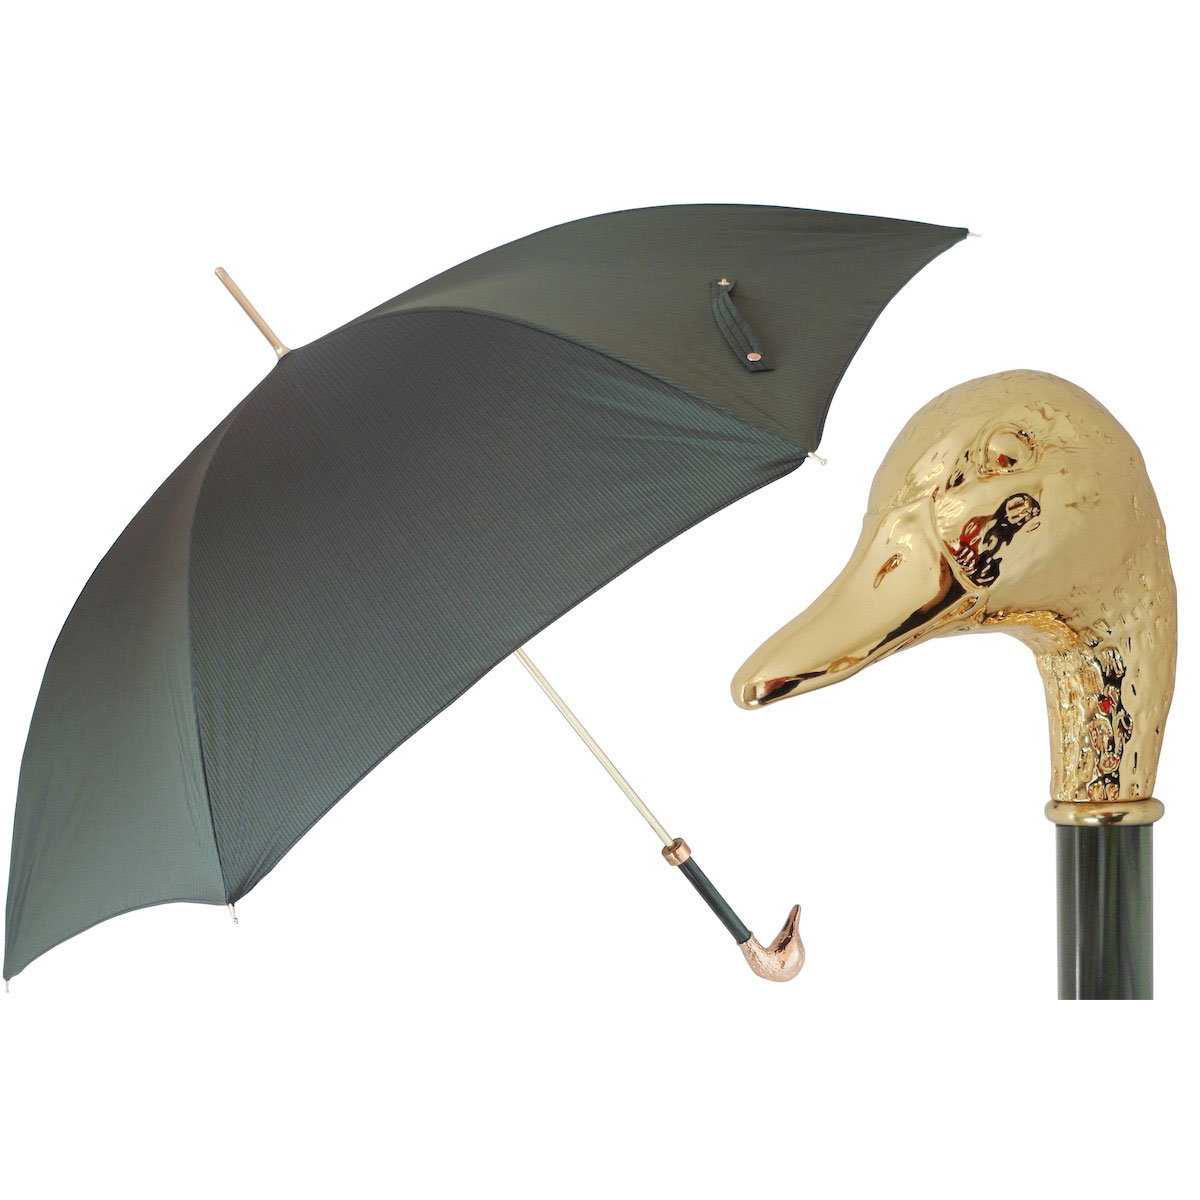 375e77e8f7cb6 Pasotti Ombrelli Green Men's Umbrella - Gold Mallard Handle